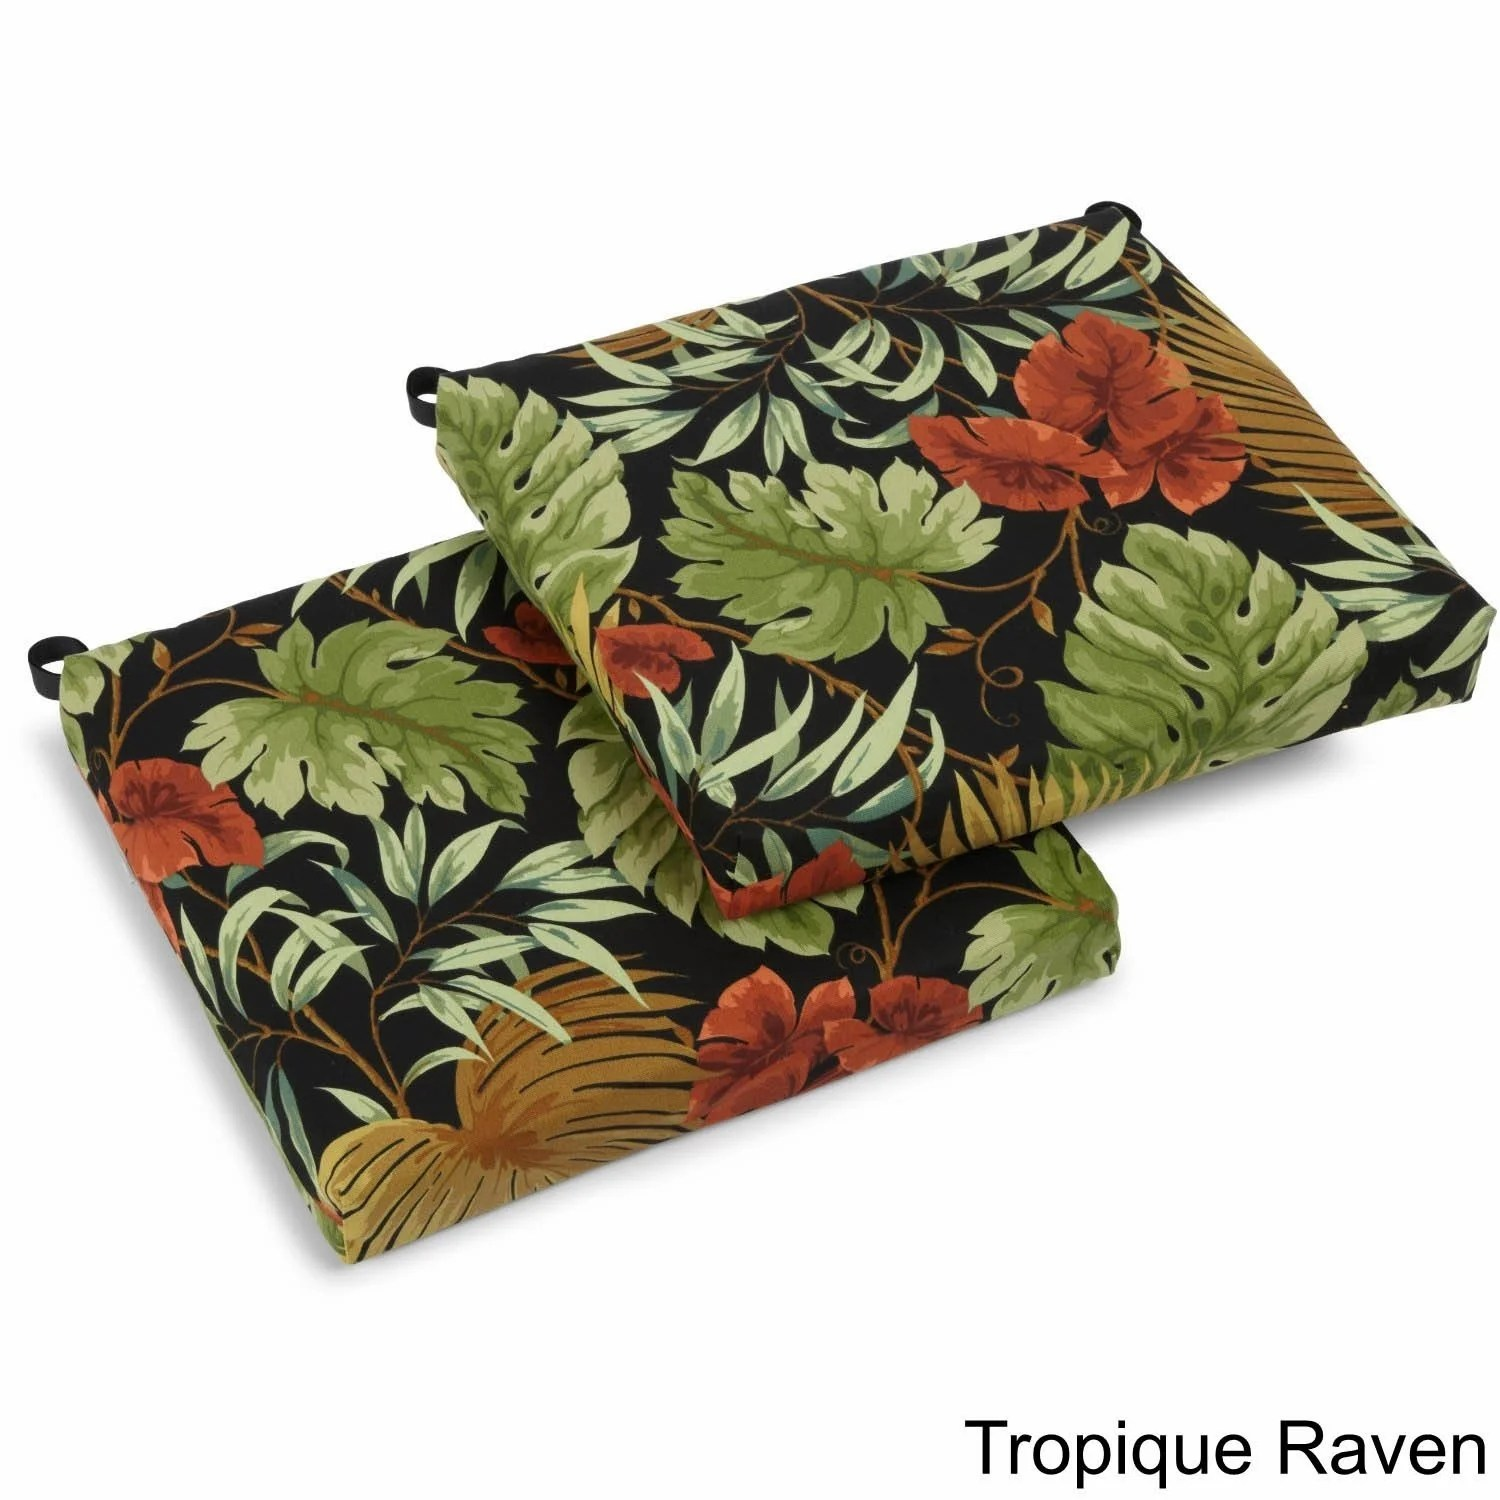 Patio Chair Cushions Cheap Blazing Needles 20 Inch Designer All Weather Patio Chair Cushion Set Of 2 20 X 20